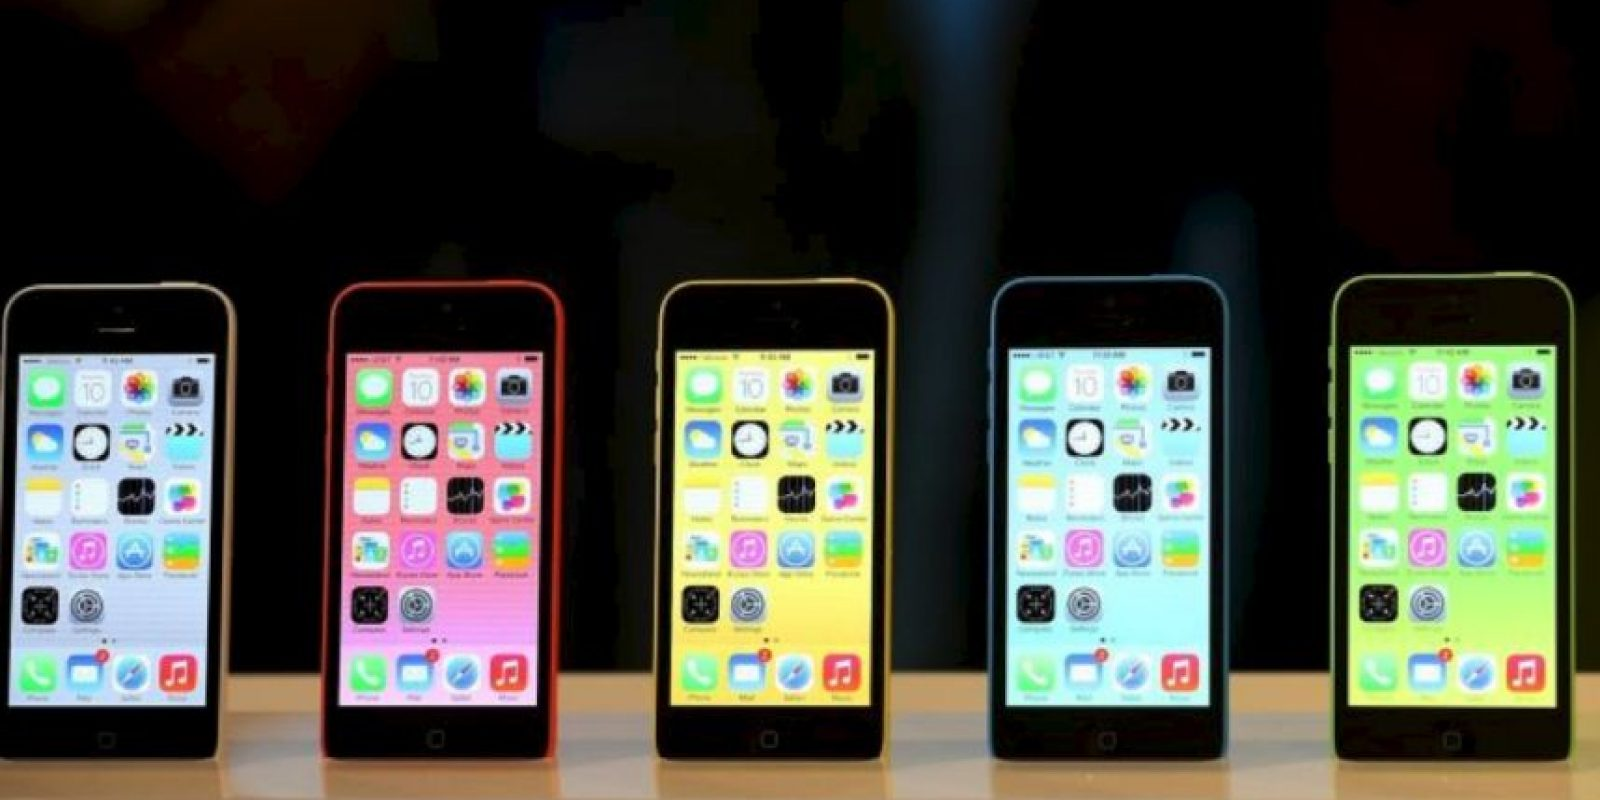 iPhone 5c (2013) Foto: Getty Images